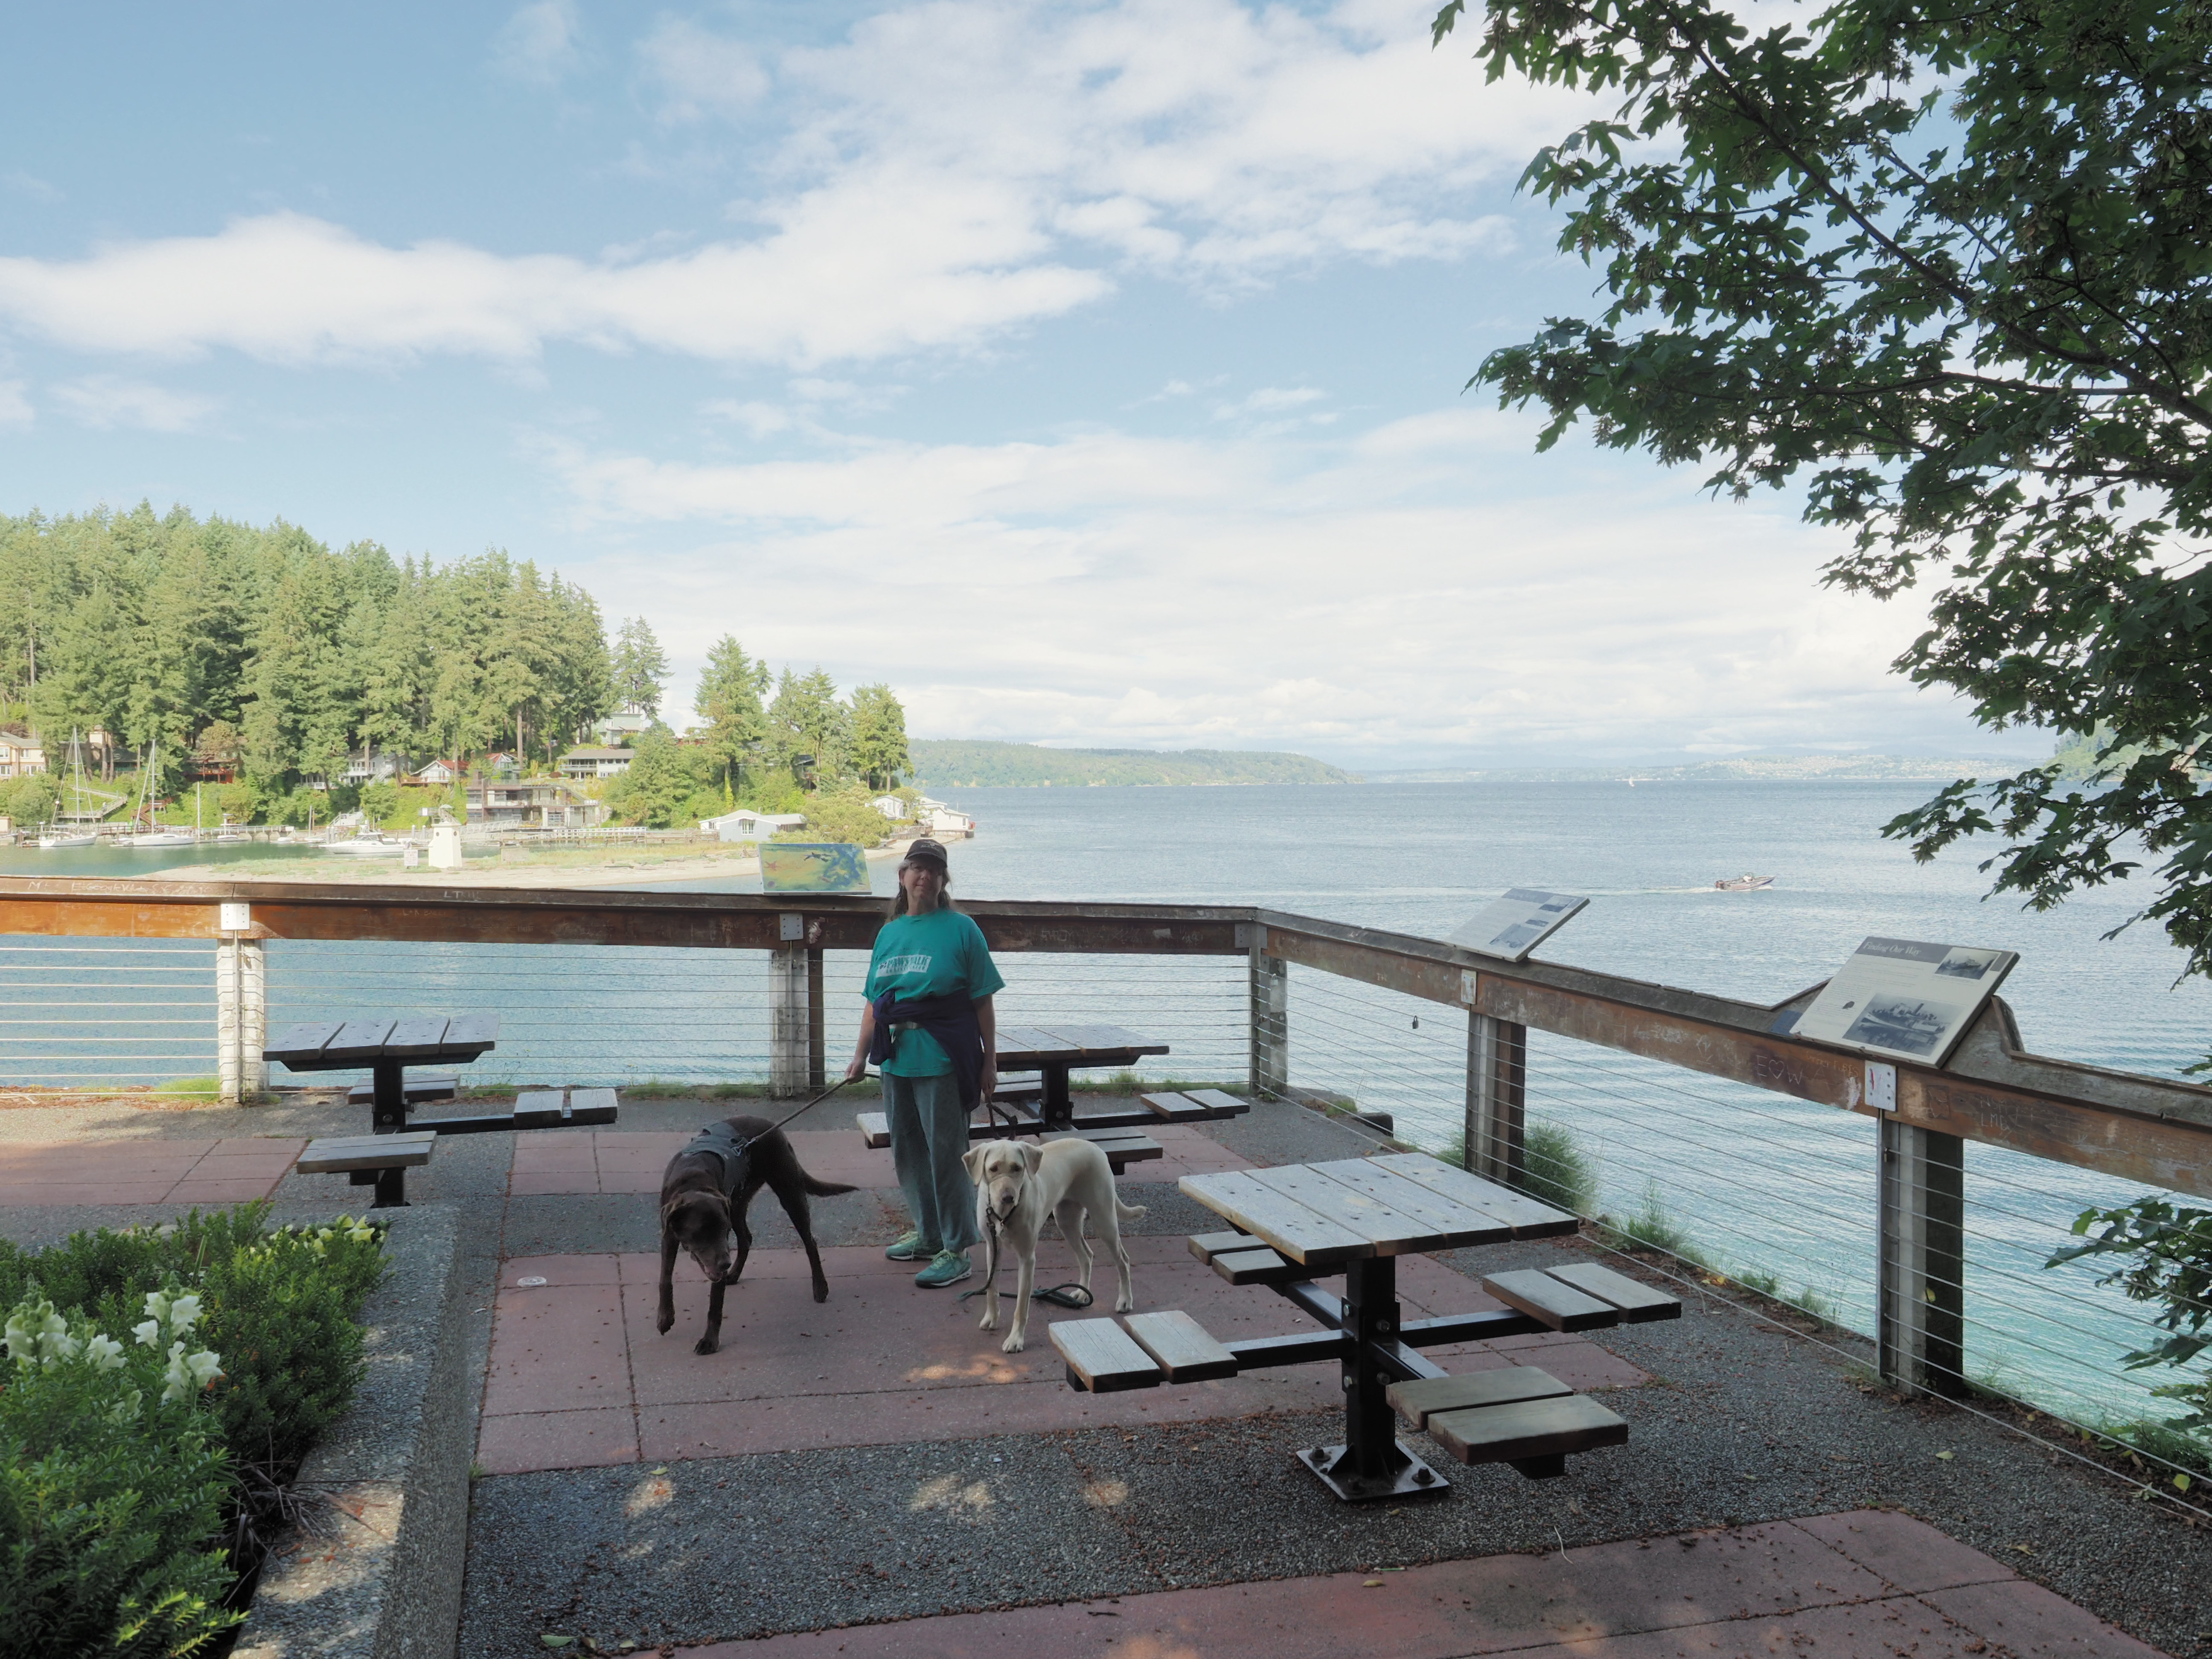 Seattle To Gig Harbor Anchorage June 13 14 2018 Water Dog Site